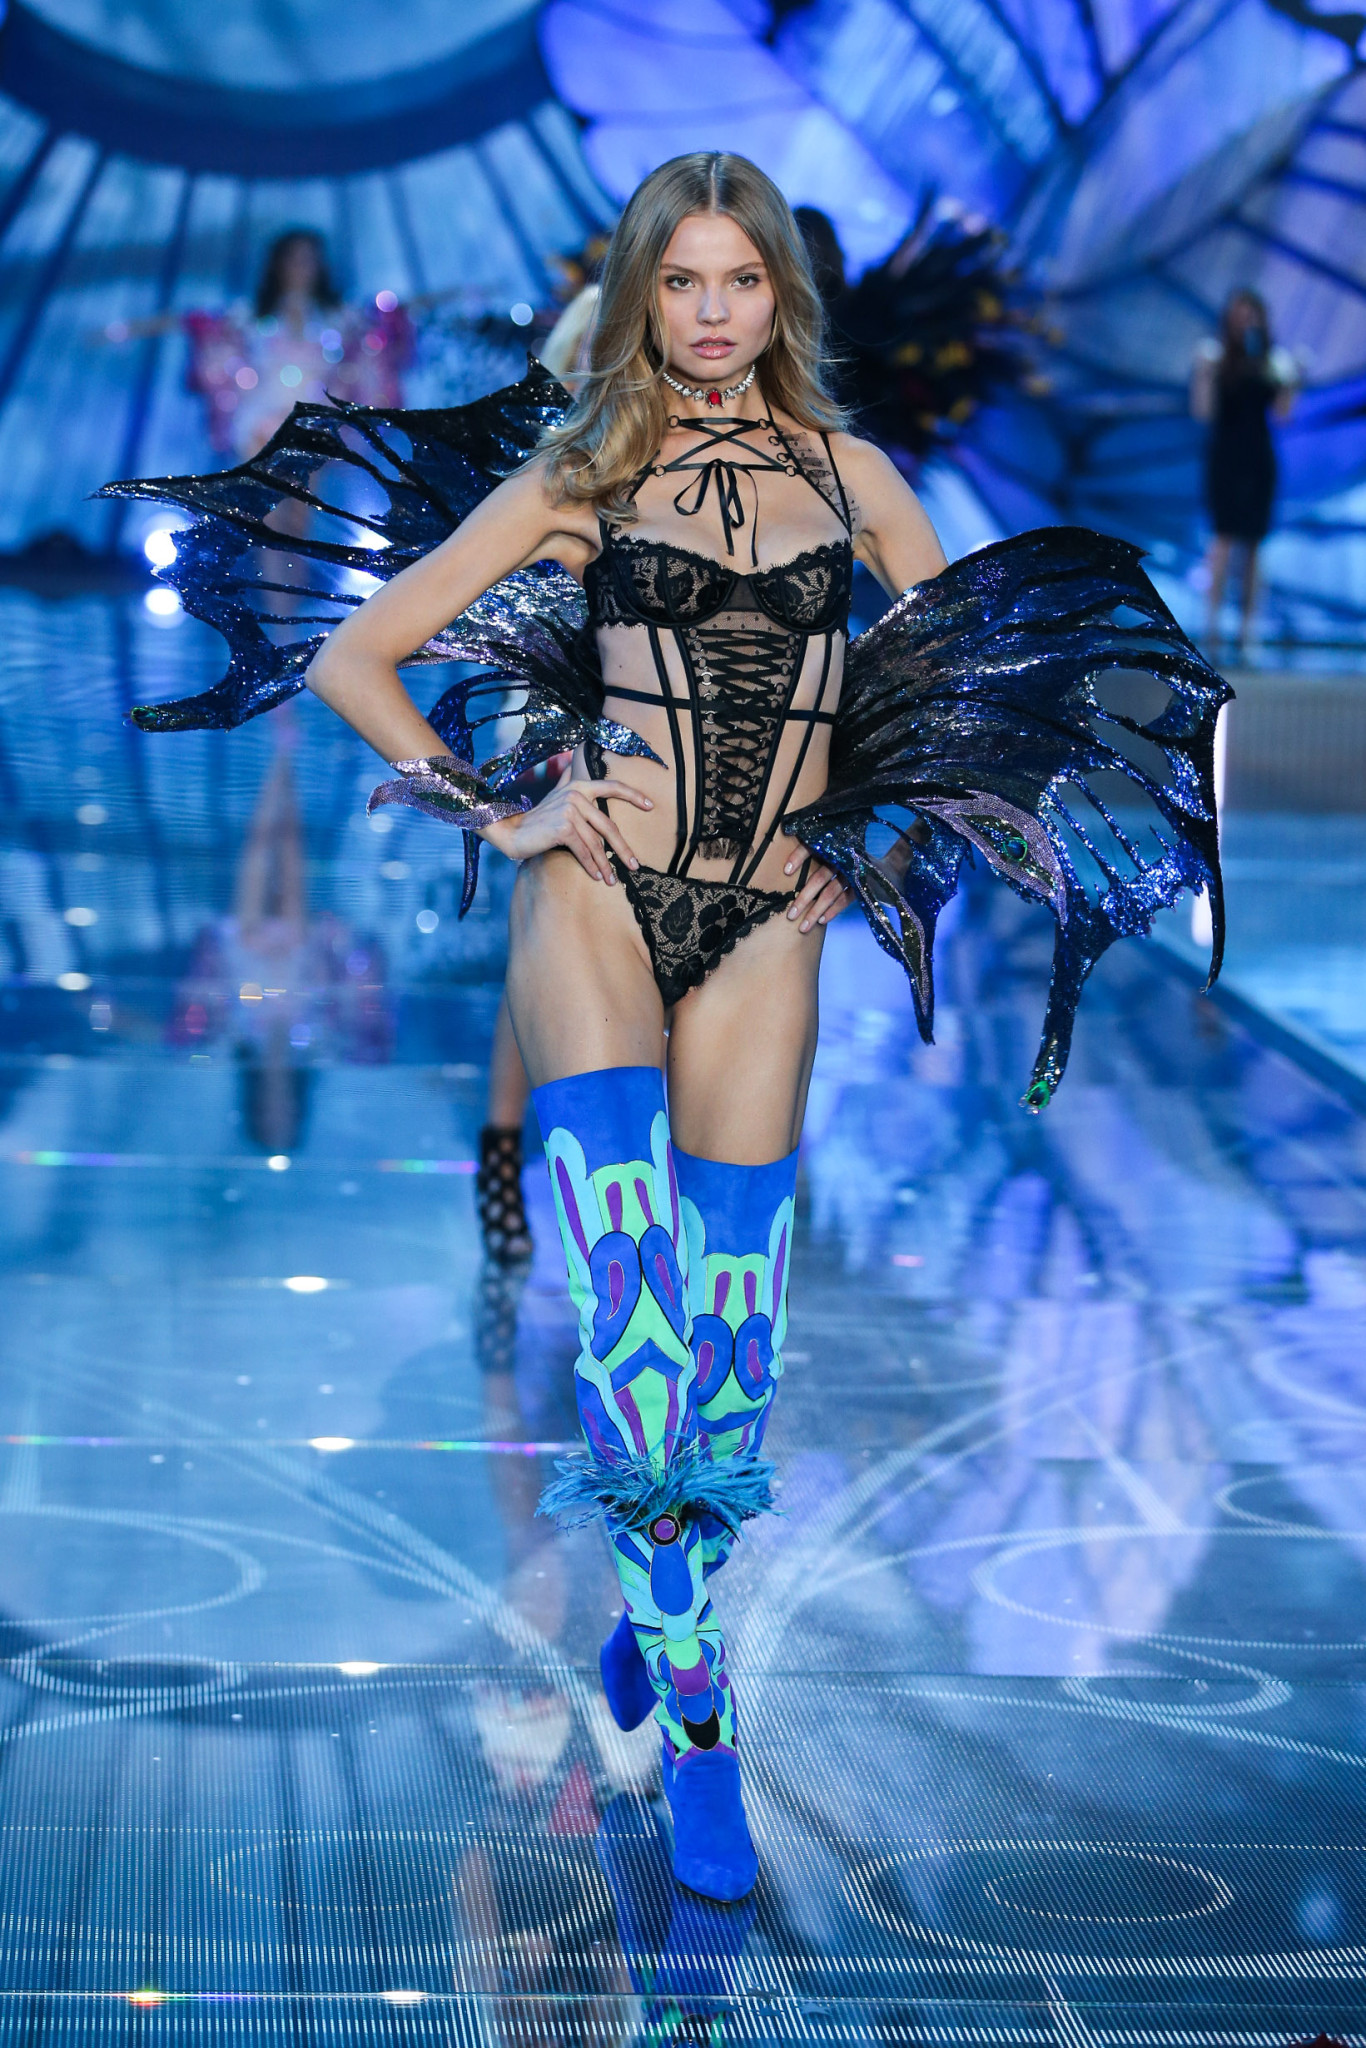 Model Magdalena Frackowiak walks the runway at the 2015 Victoria's Secret Fashion Show in New York City on November 10th, 2015